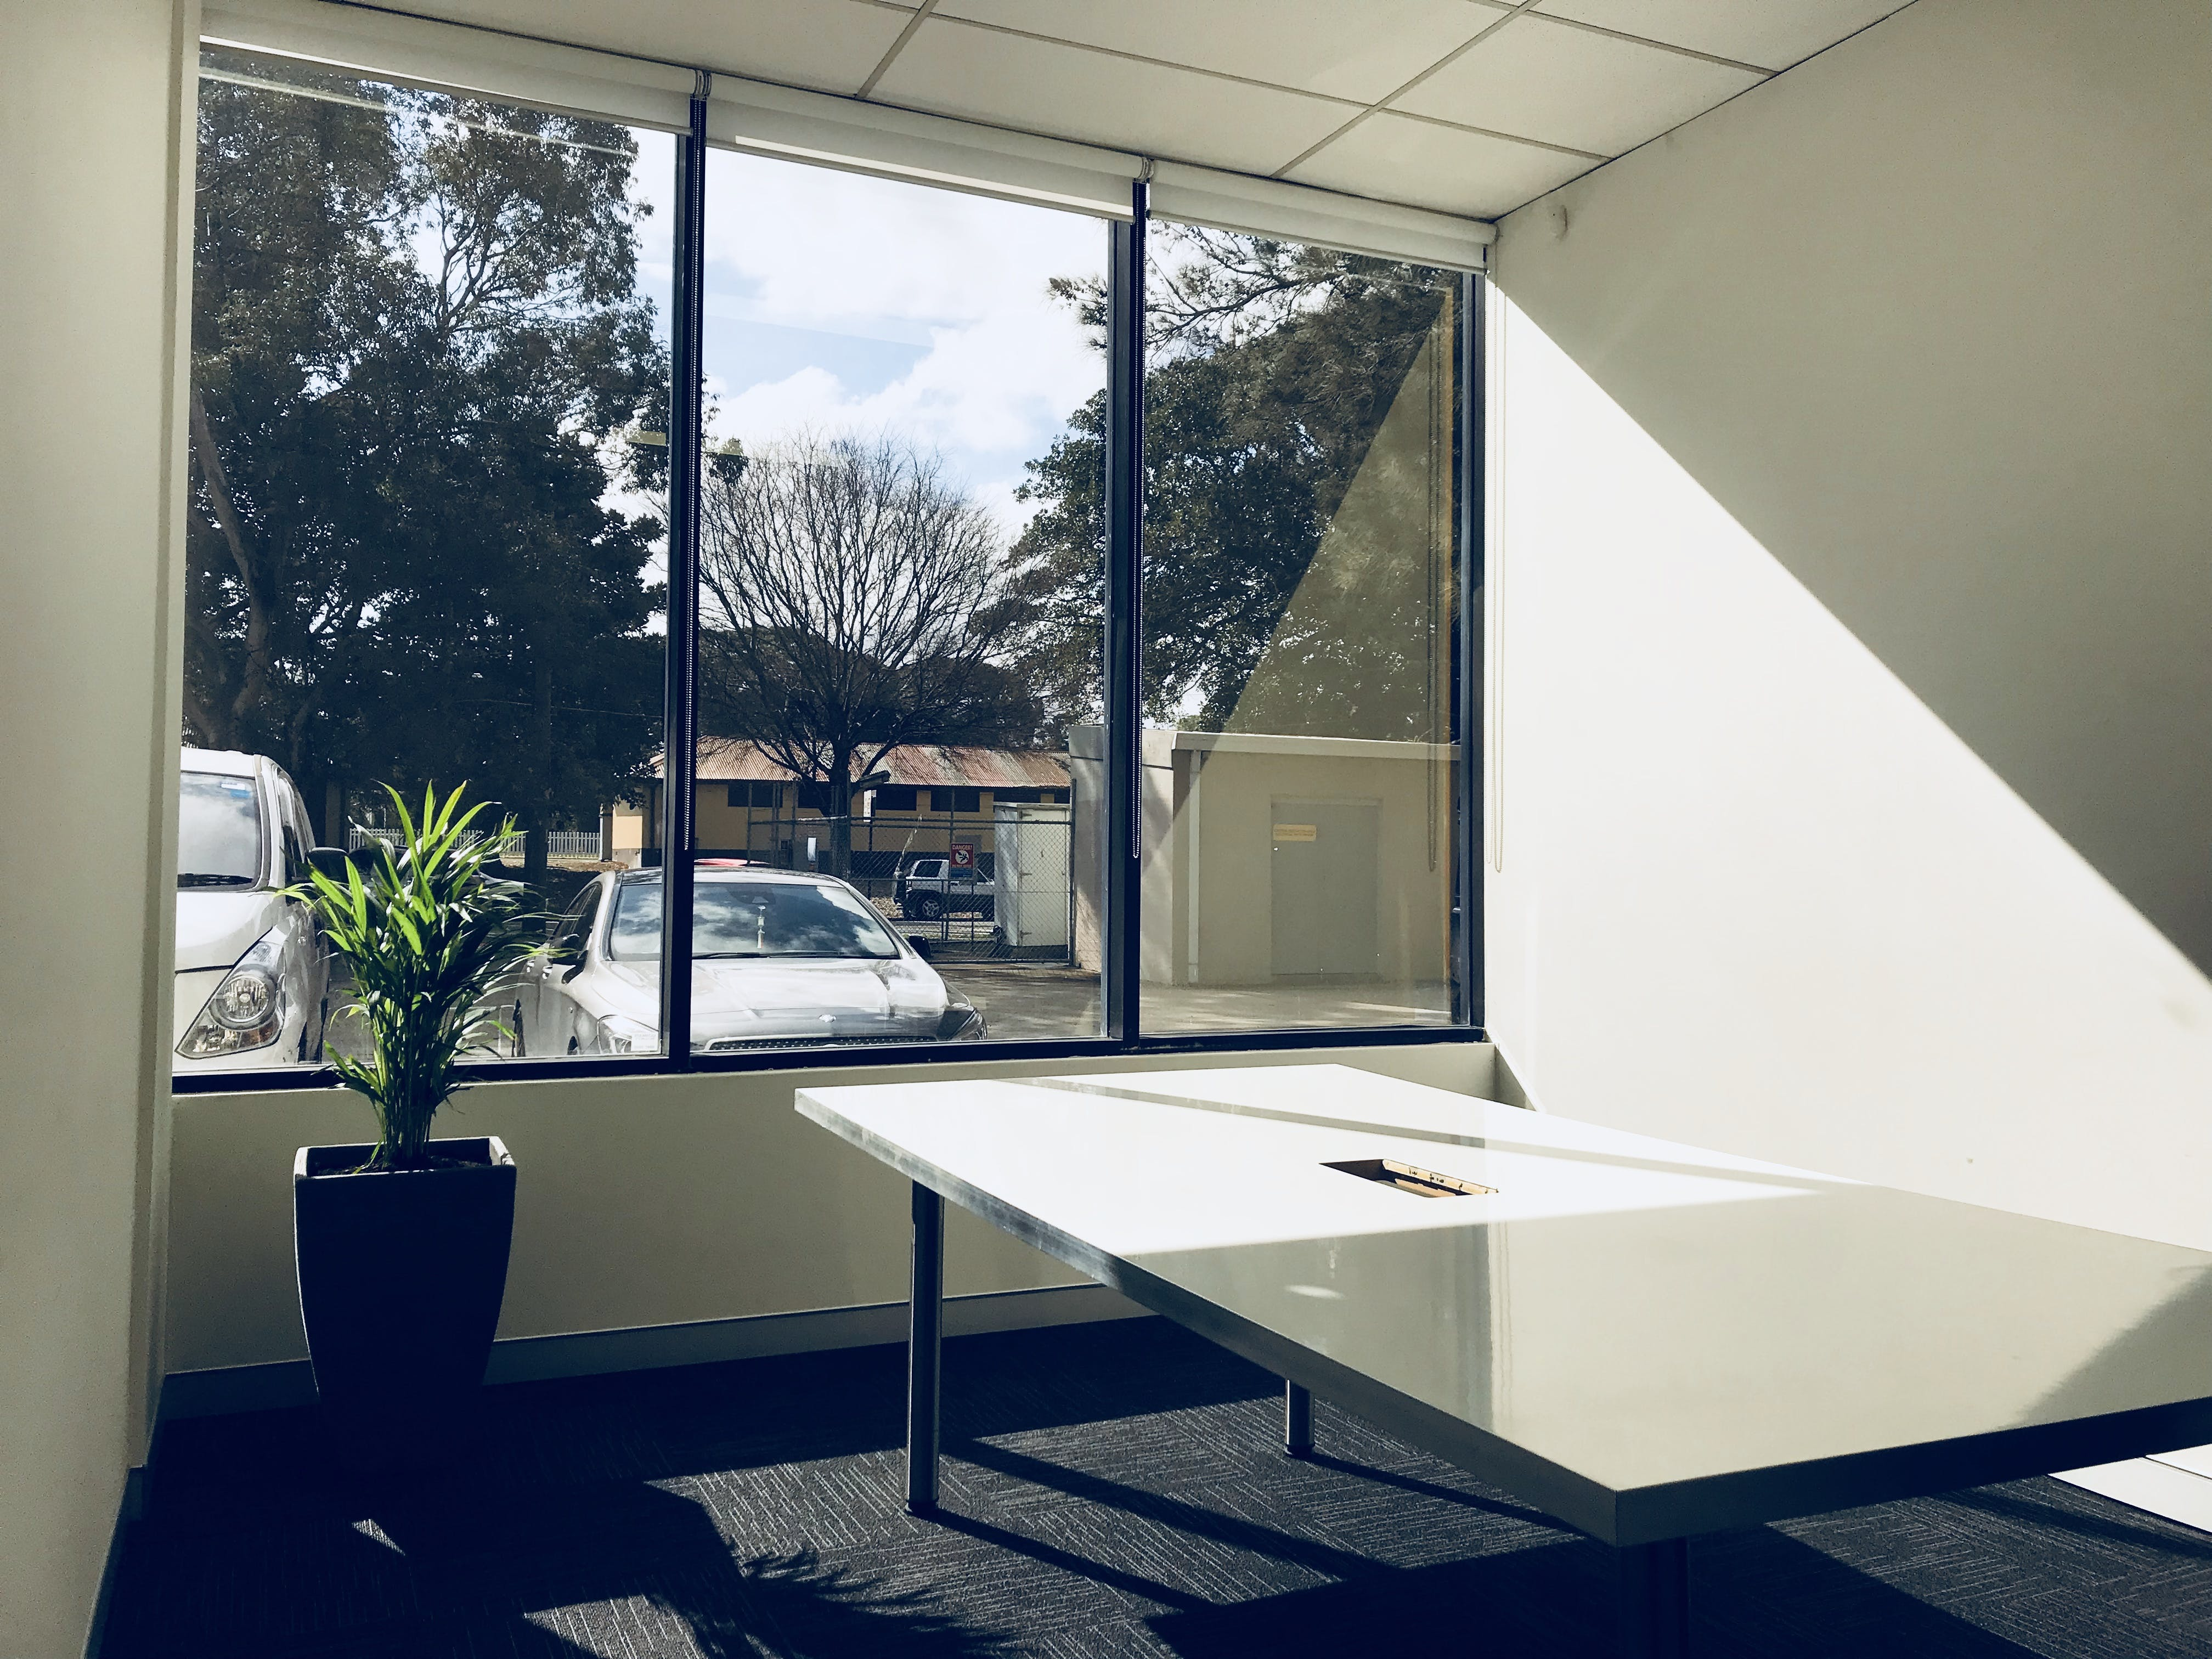 Office 2, private office at Workit Spaces, image 1